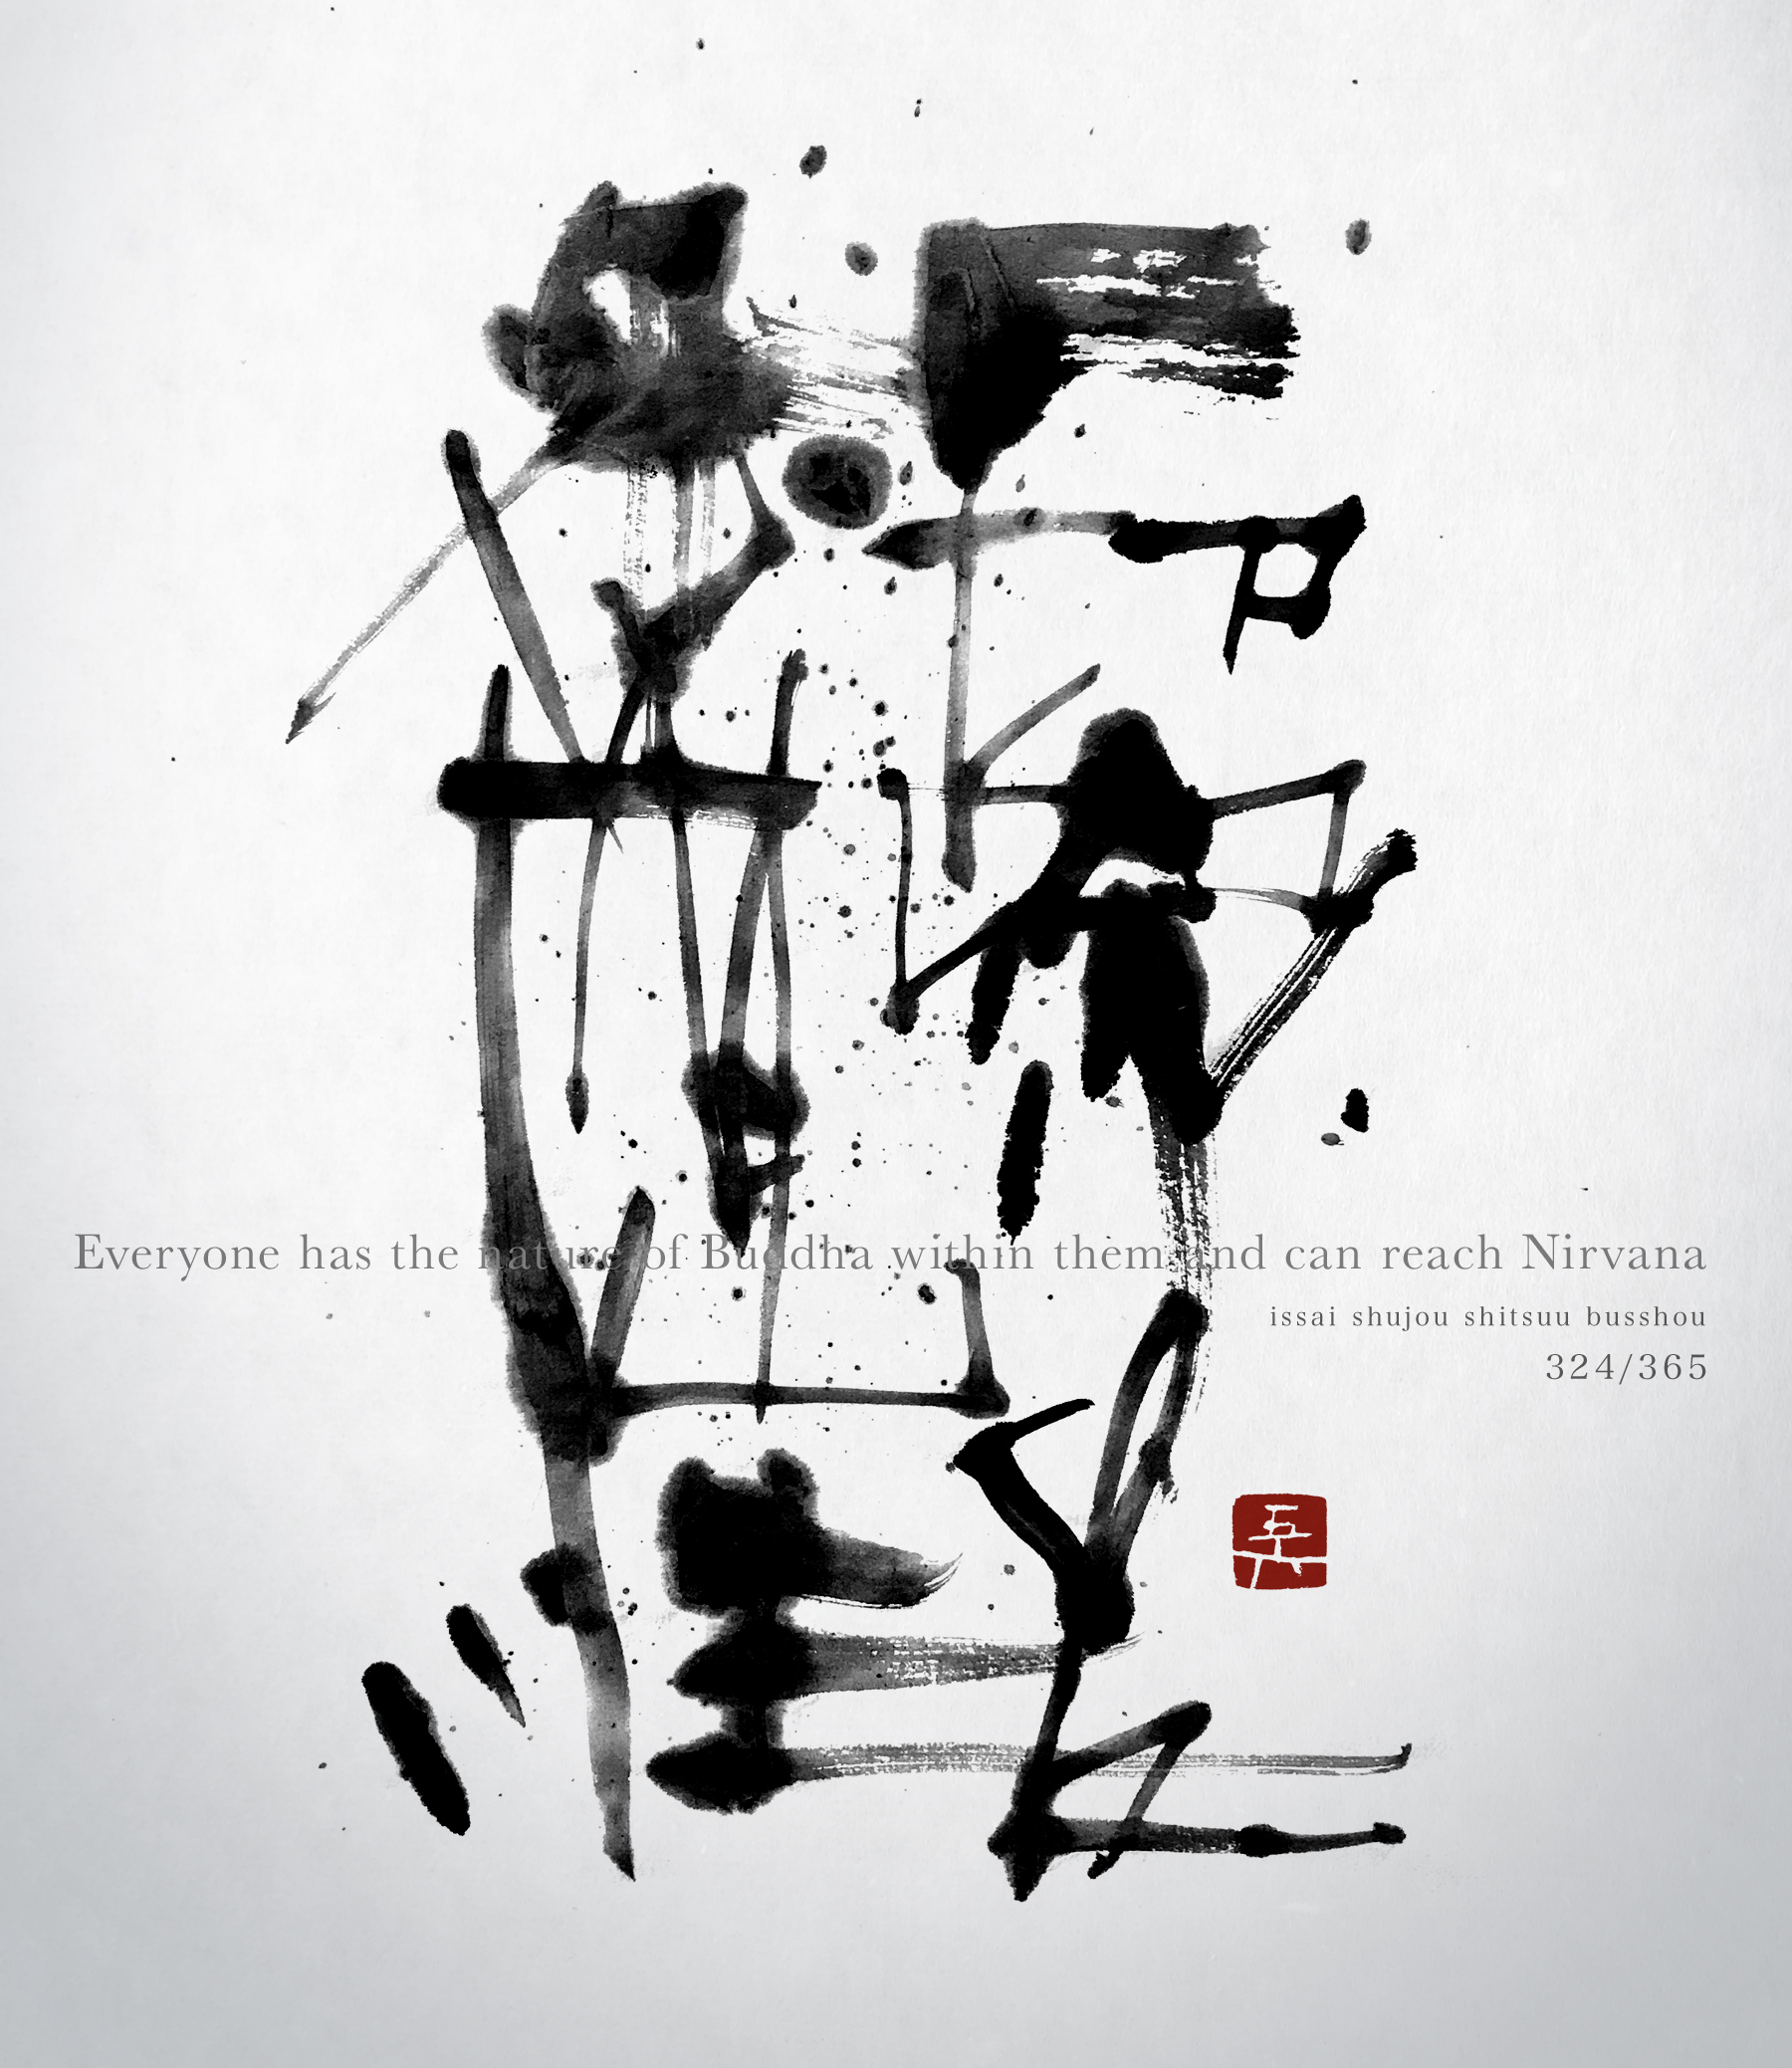 一切衆生悉有仏性 | Everyone has the nature of Buddha within them 書道作品 japaneseart japanese calligraphy 書家 田川悟郎 Goroh Tagawa